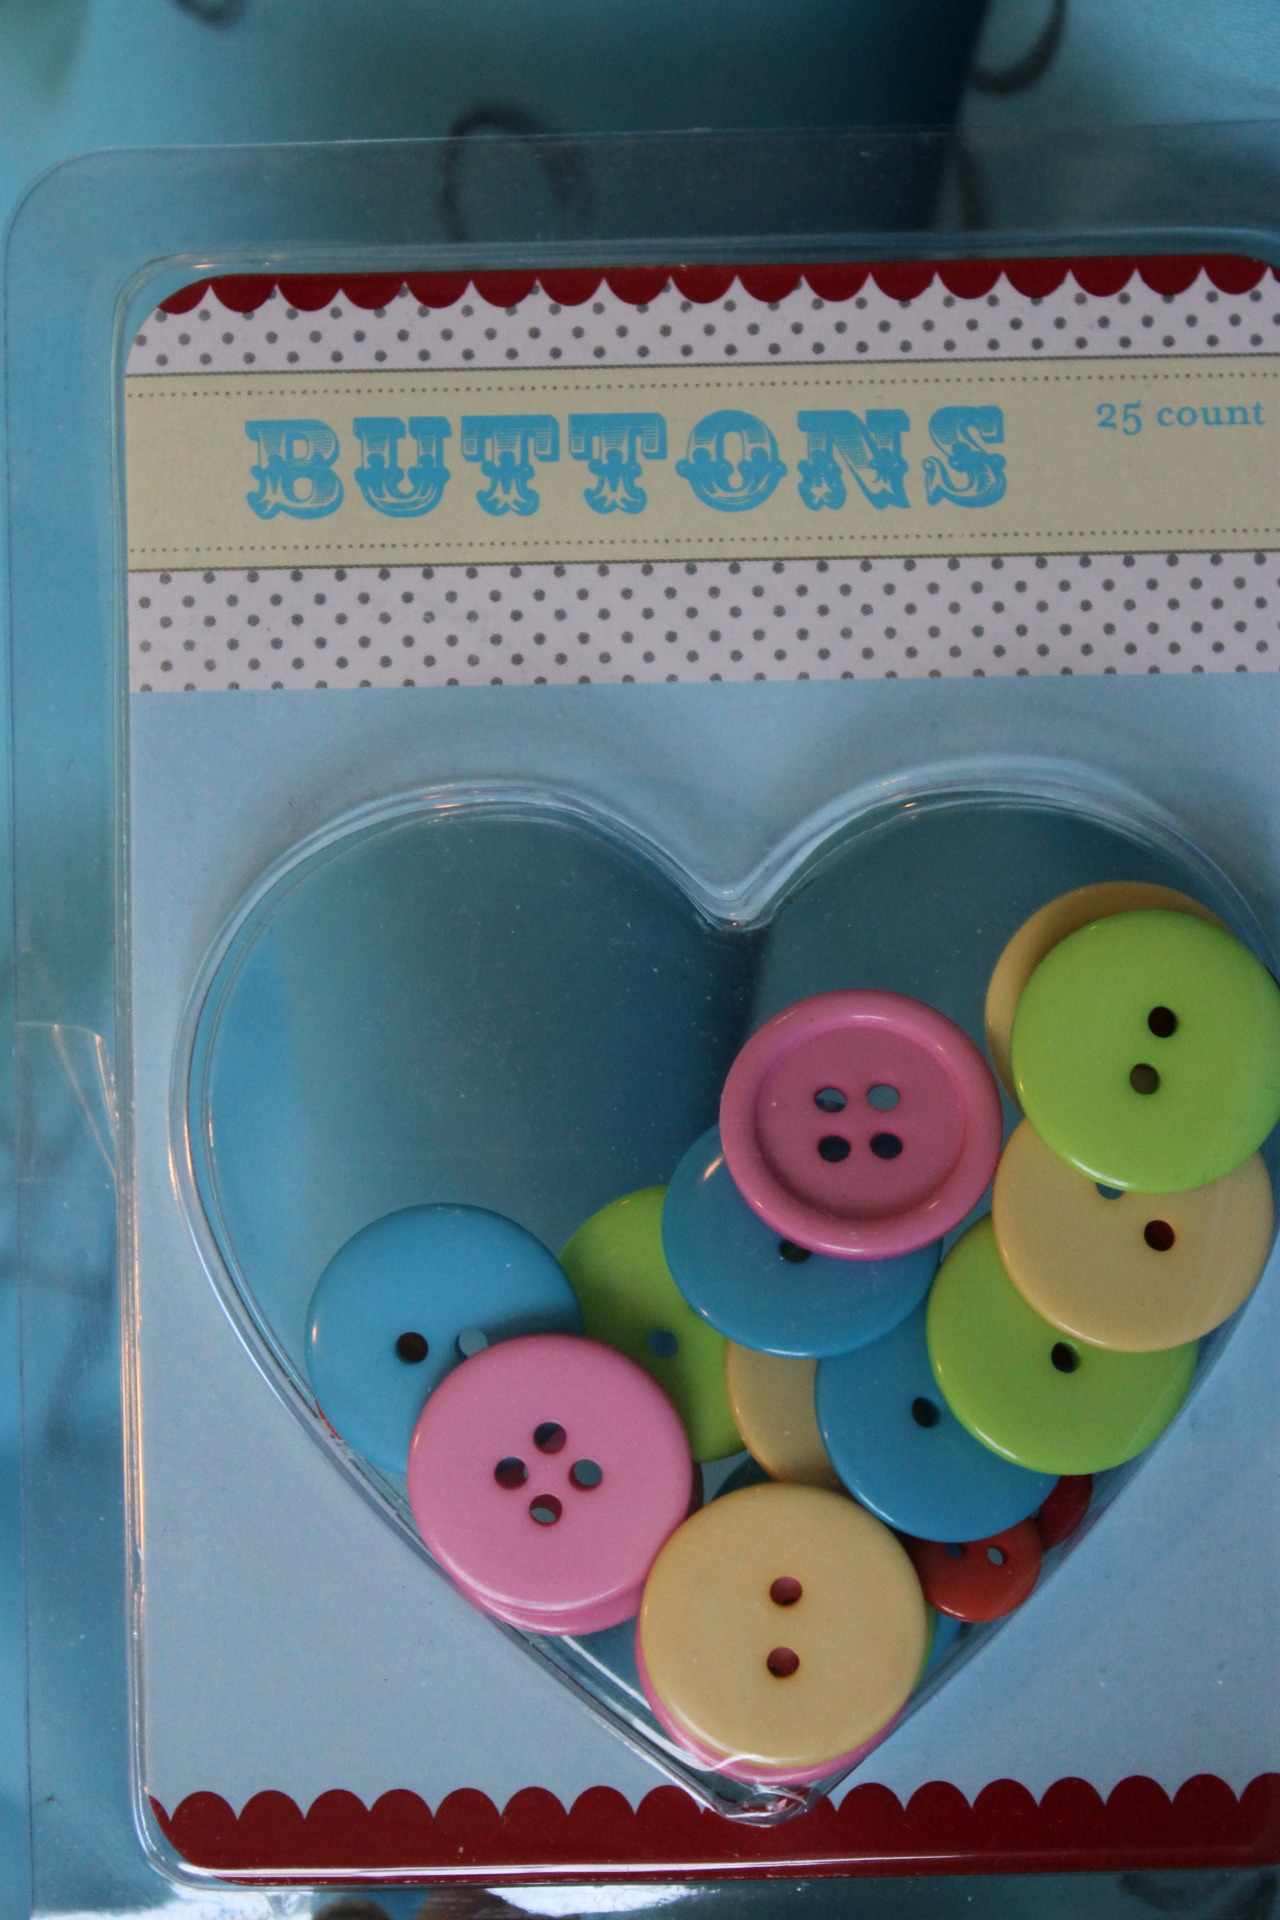 An adorable package of buttons that my equally adorable friend, Beasley, got me from the Target dollar section!